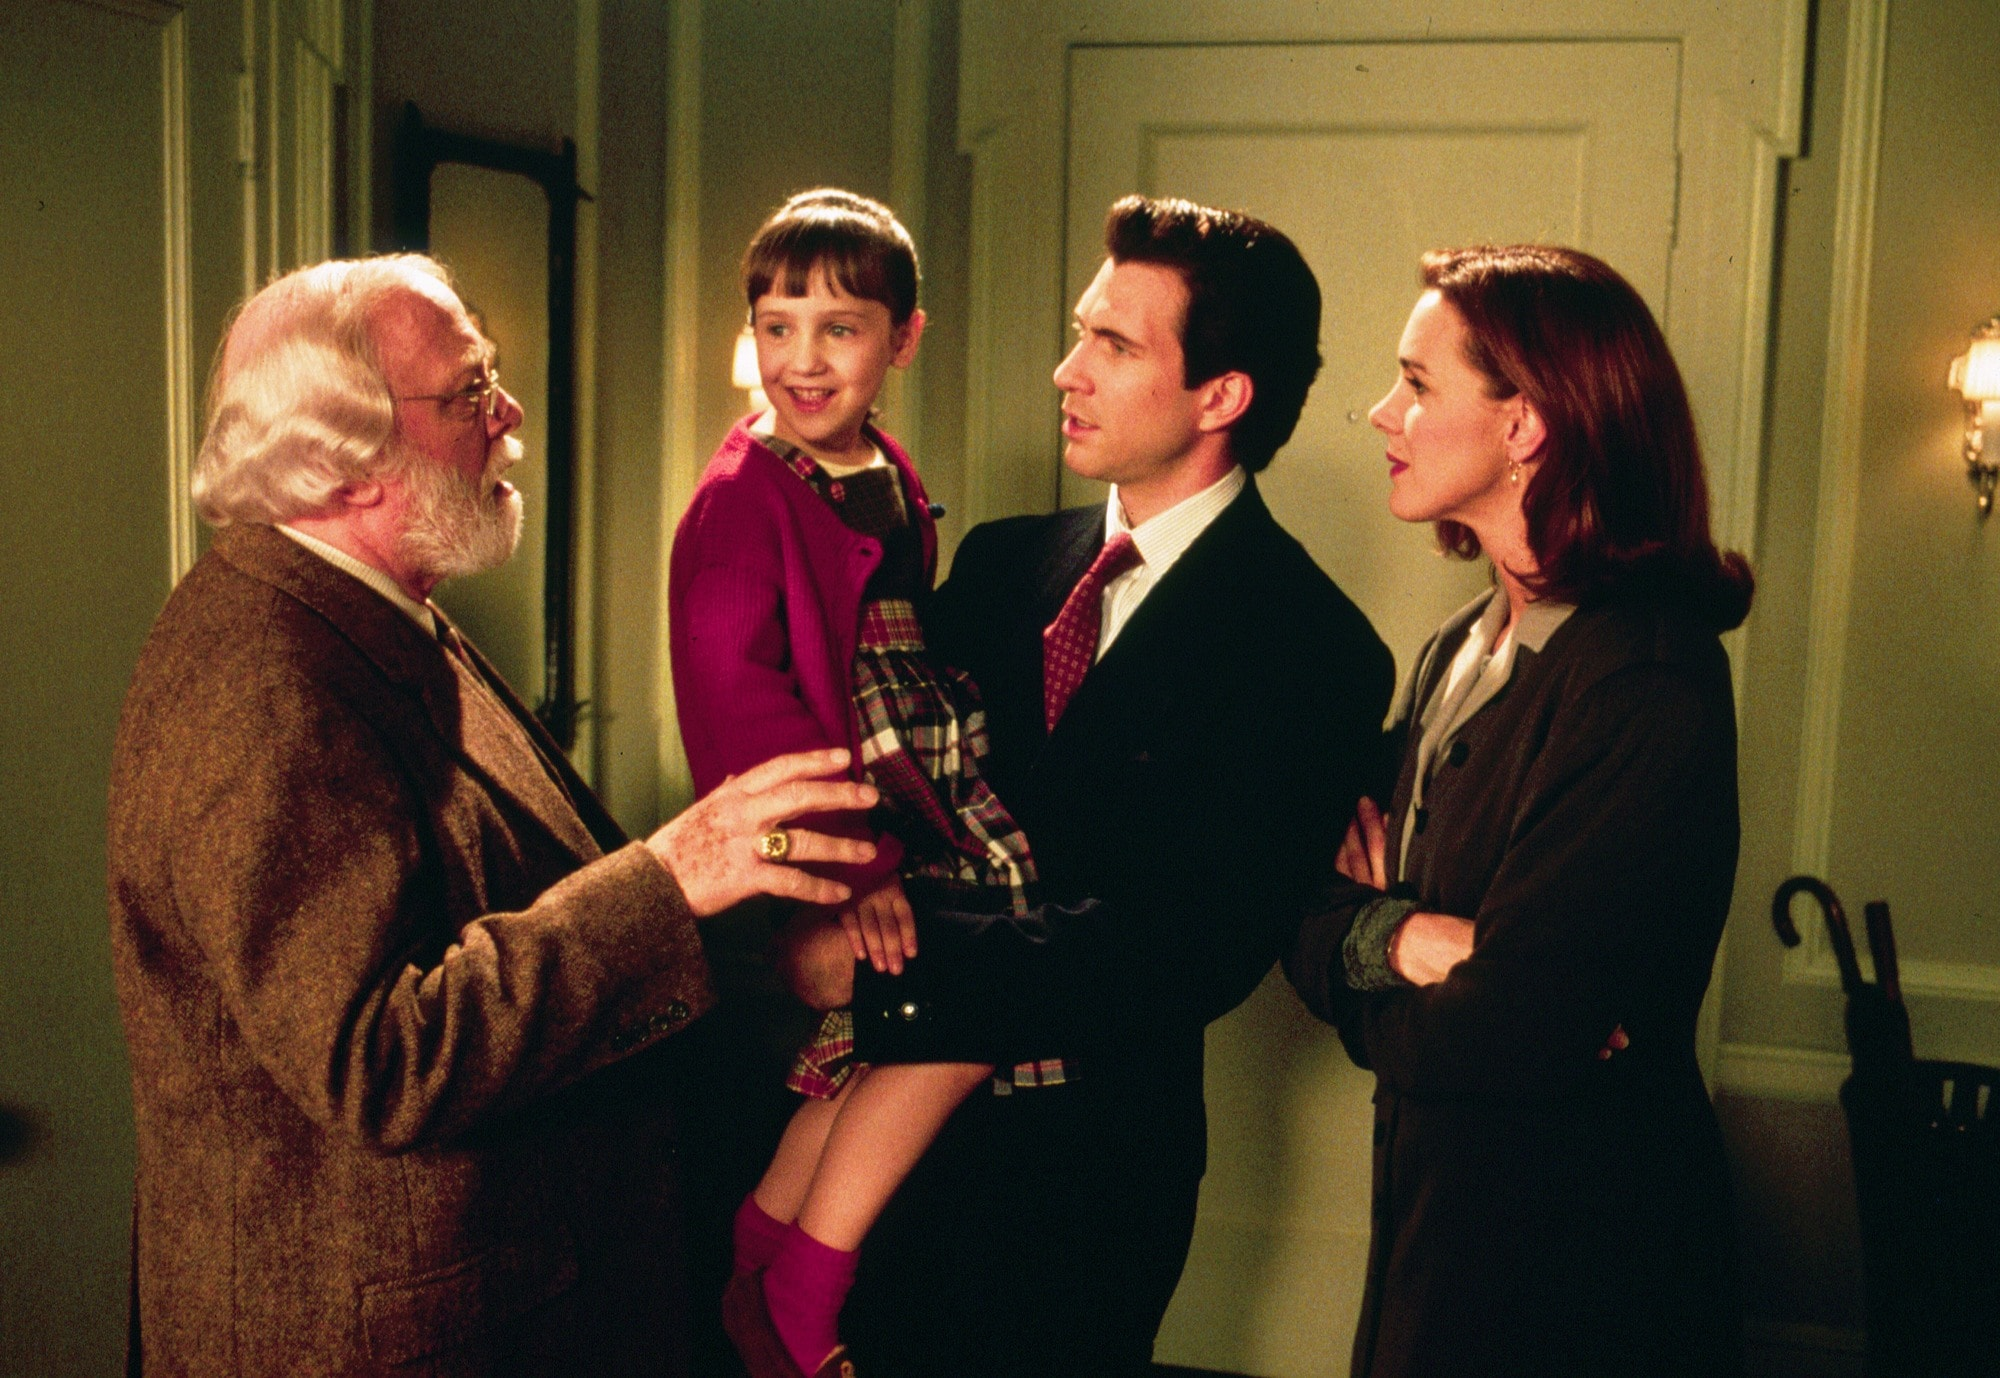 Miracle on 34th Street: Elizabeth Perkins as Dorey Walker with her hair styled into sleek hairstyle with flicked ends, chatting to the cast of Miracle on 34th street